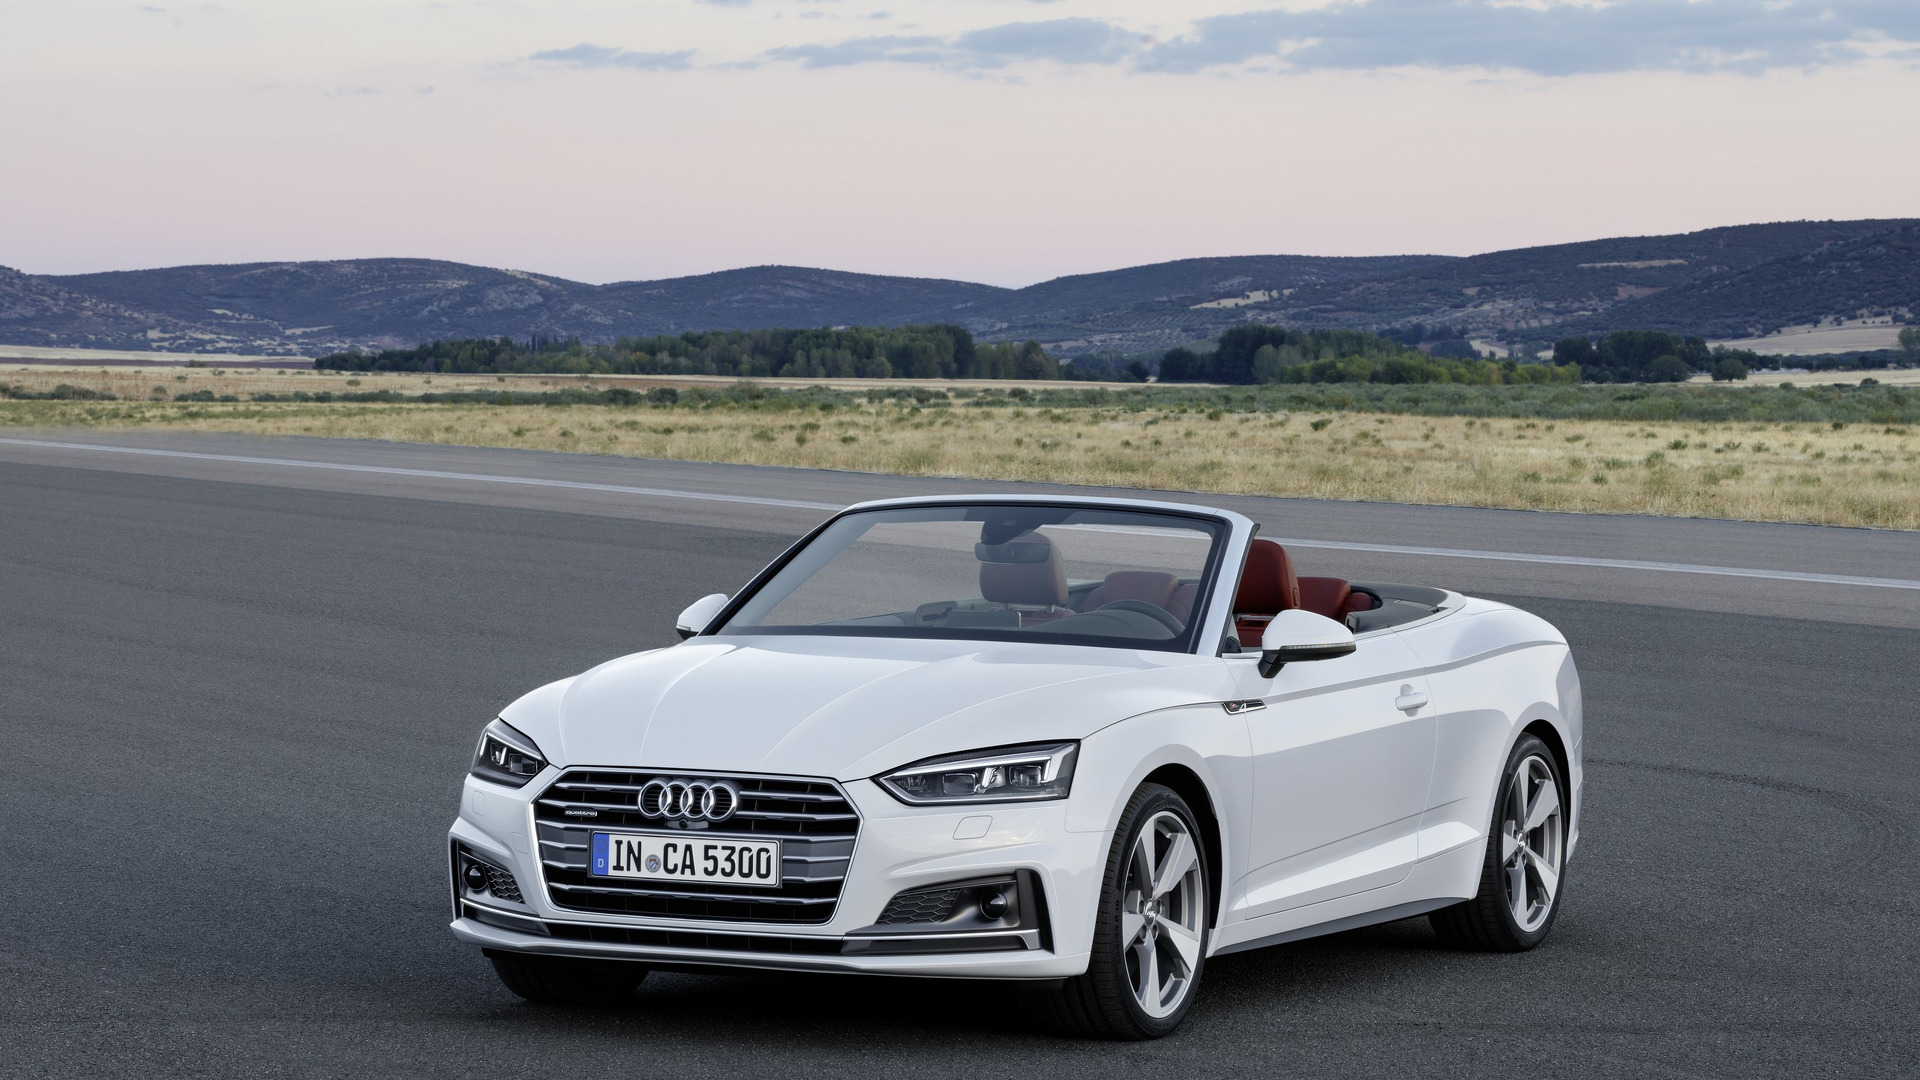 convertible uk tt new for audi sale roadster cars boot